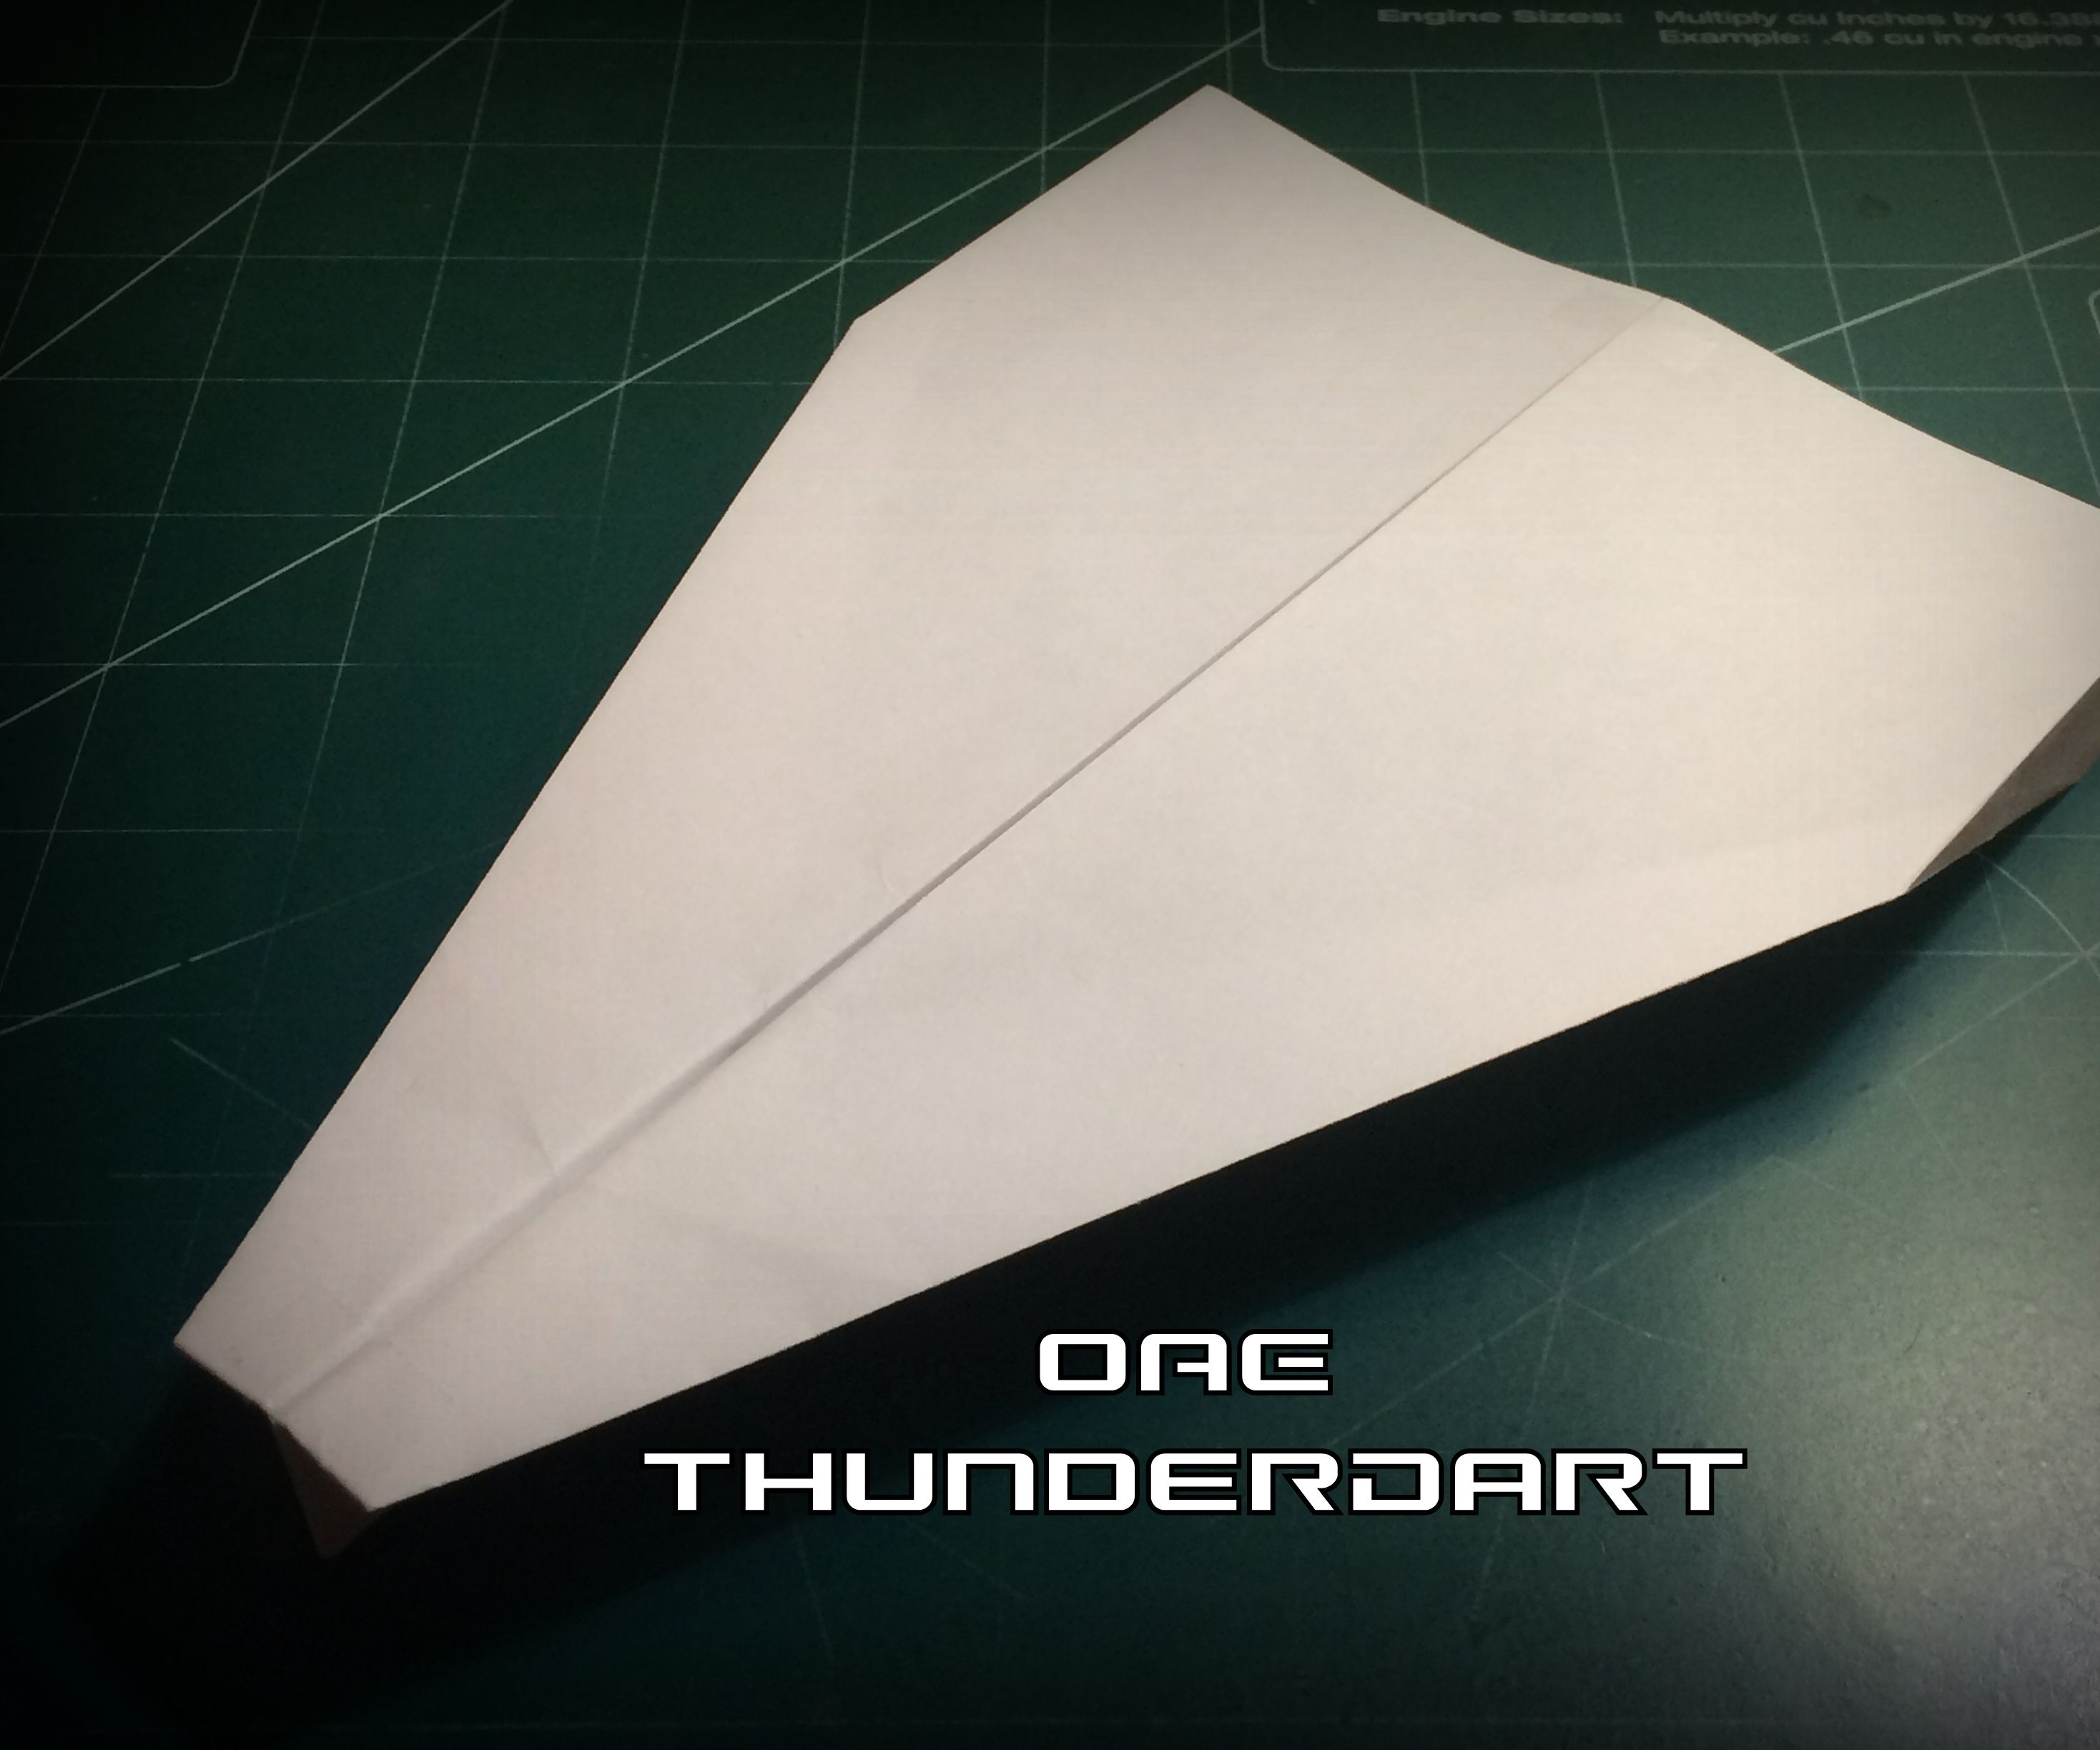 How to Make the ThunderDart Paper Airplane